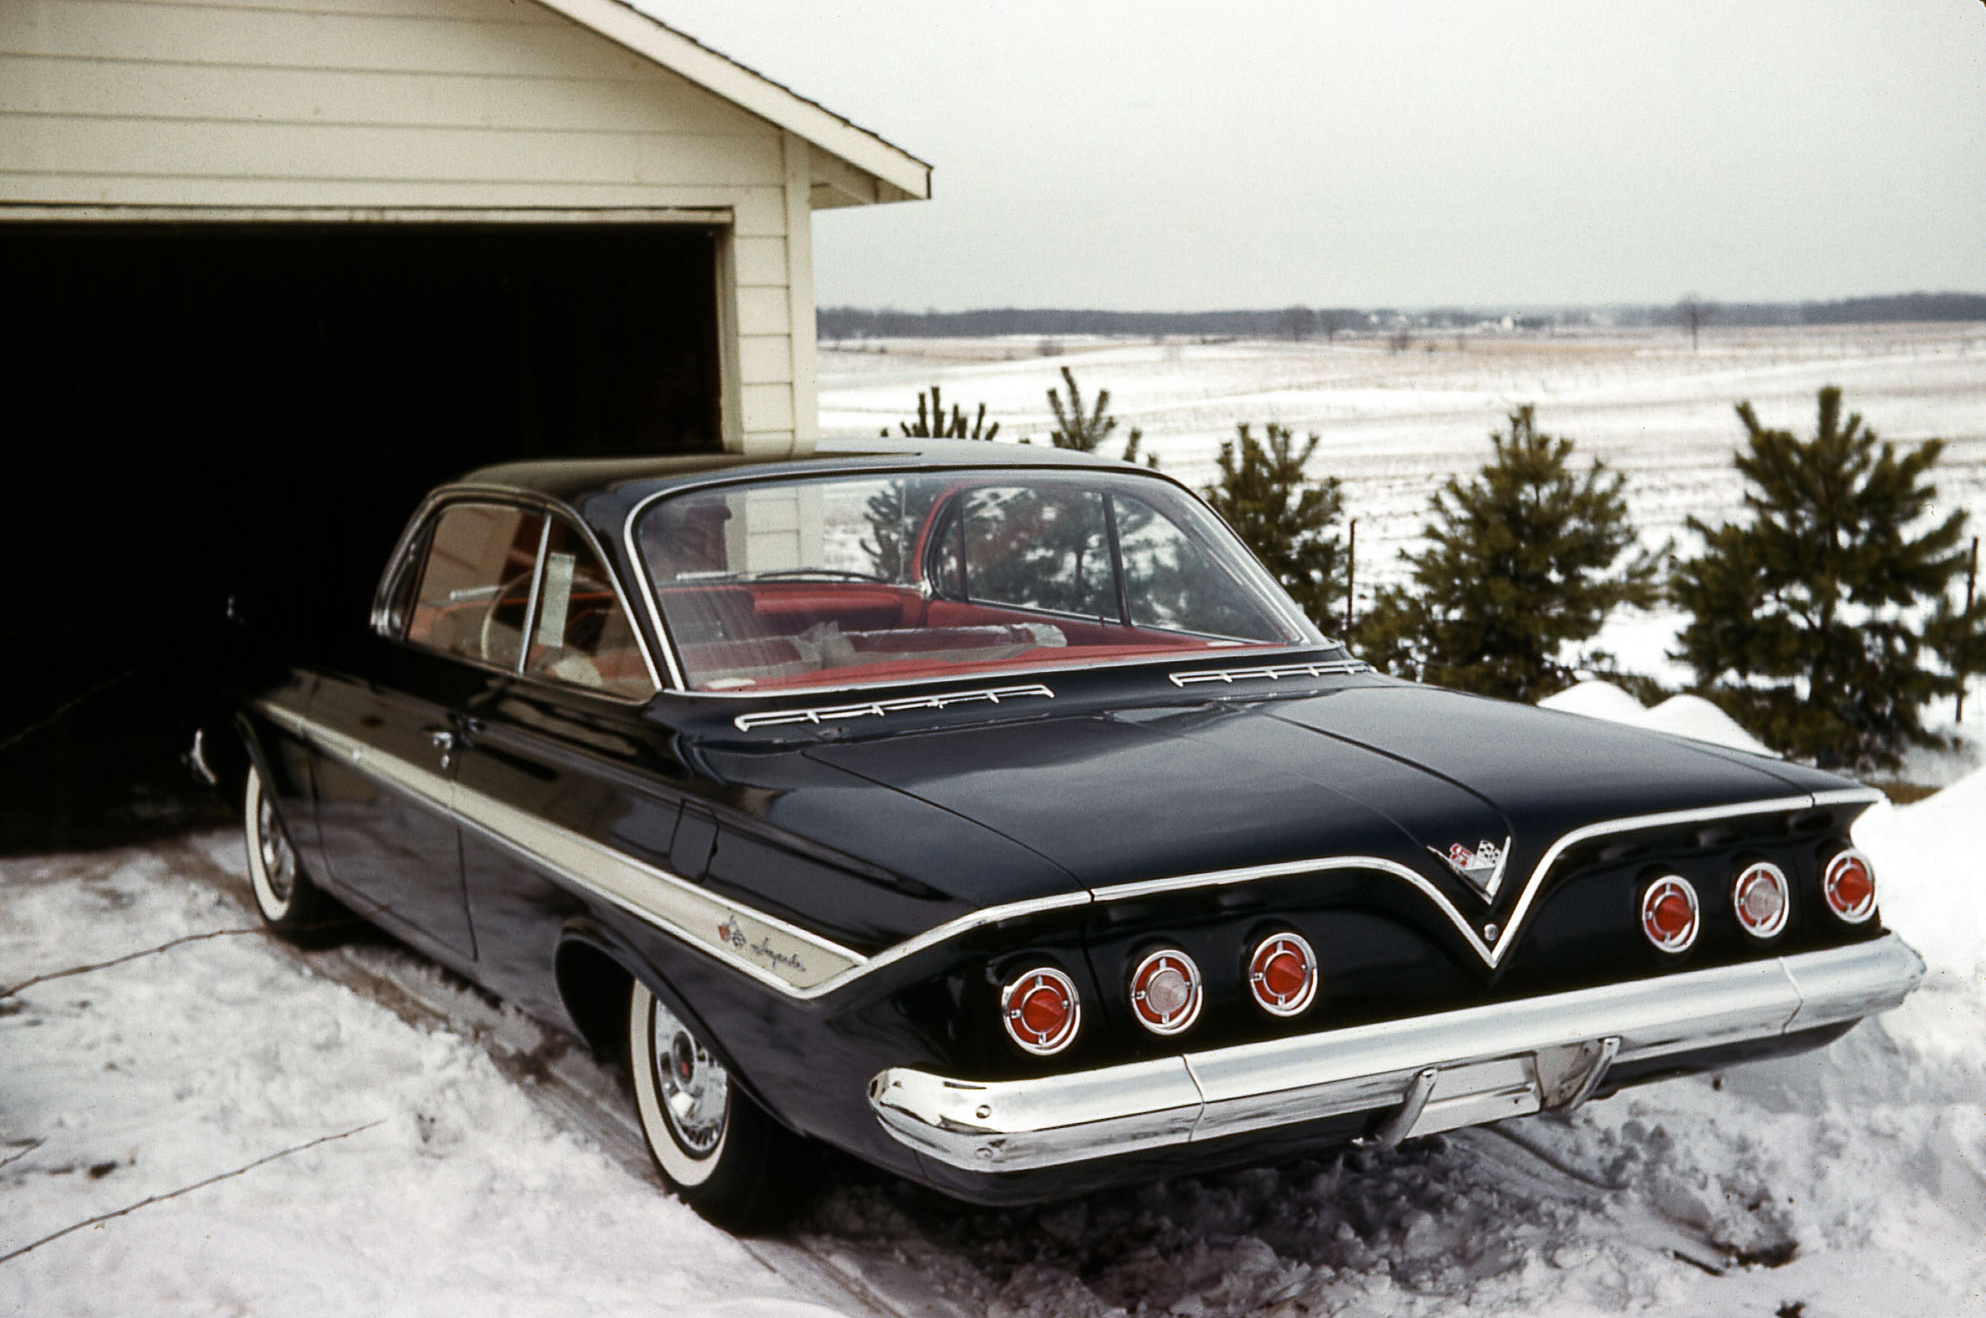 hight resolution of on a snowy february day royce jolley took delivery of his brand new 1961